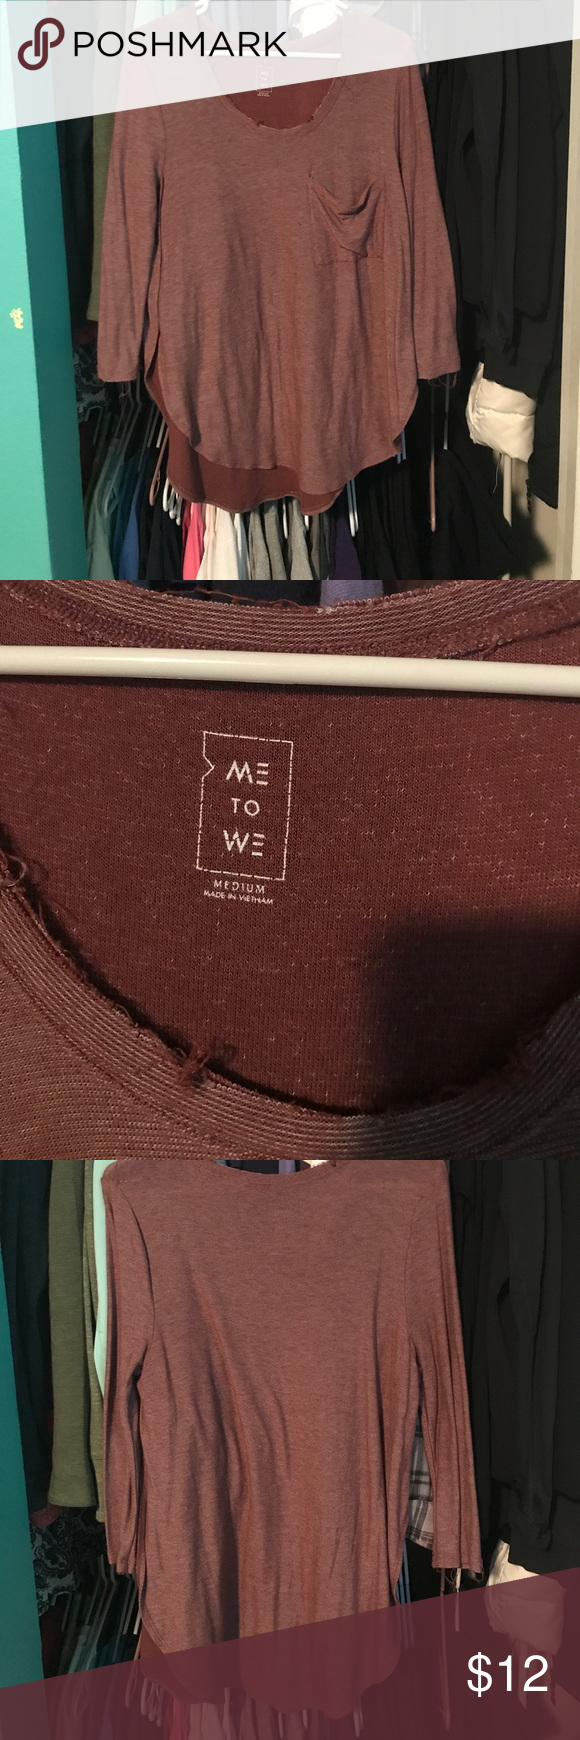 Me to We raw edge flows shirt Raw edge hem shirt, worn a few times, great condition, tulip type shirt, maroon color Pacific Sunwear Tops Tees - Long Sleeve